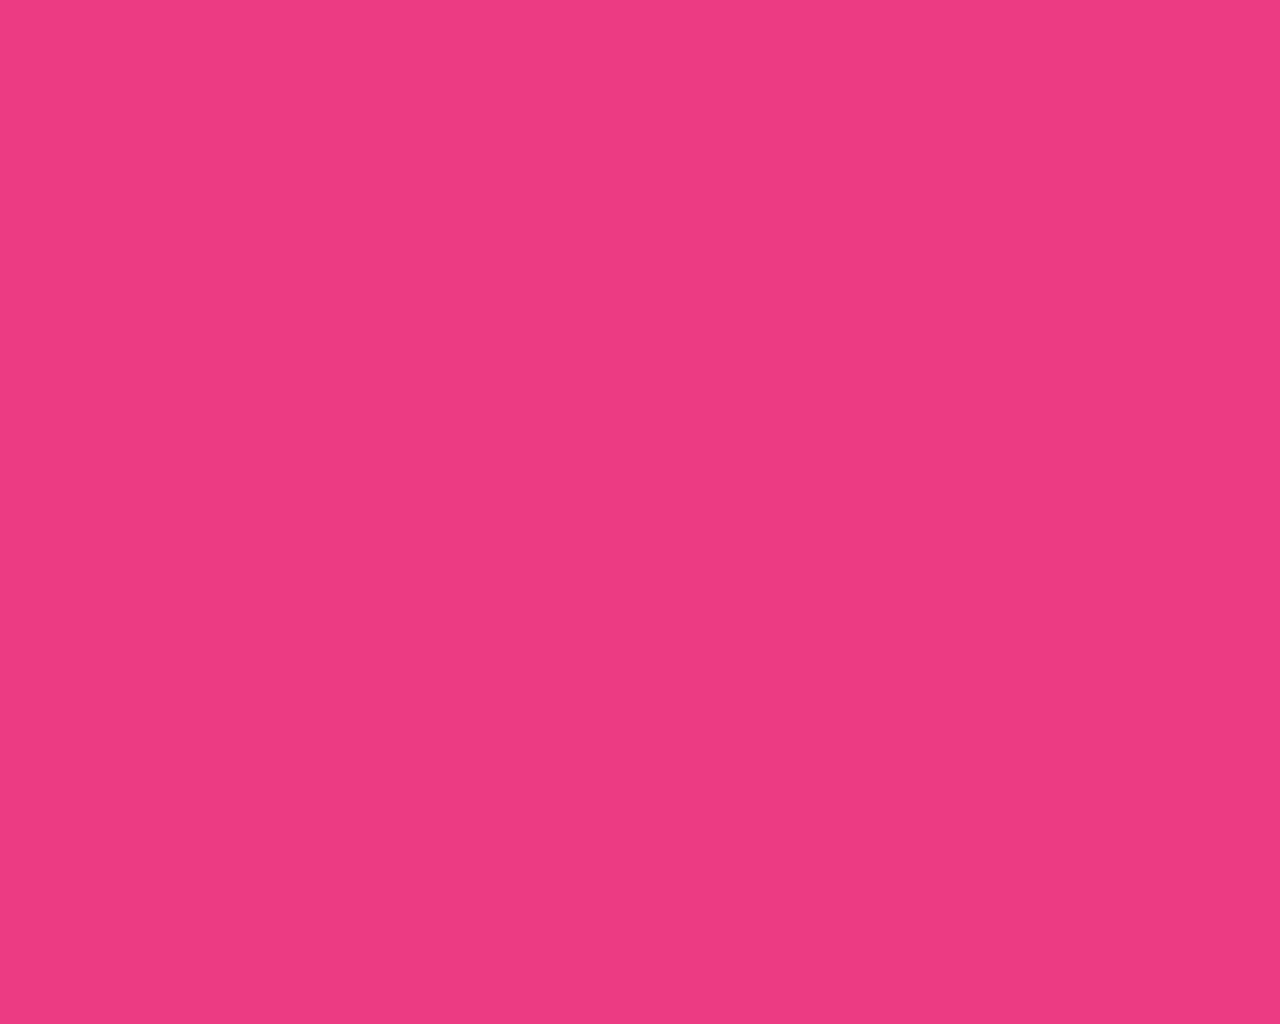 Cerise Pink Solid Background Wallpaper - http ...